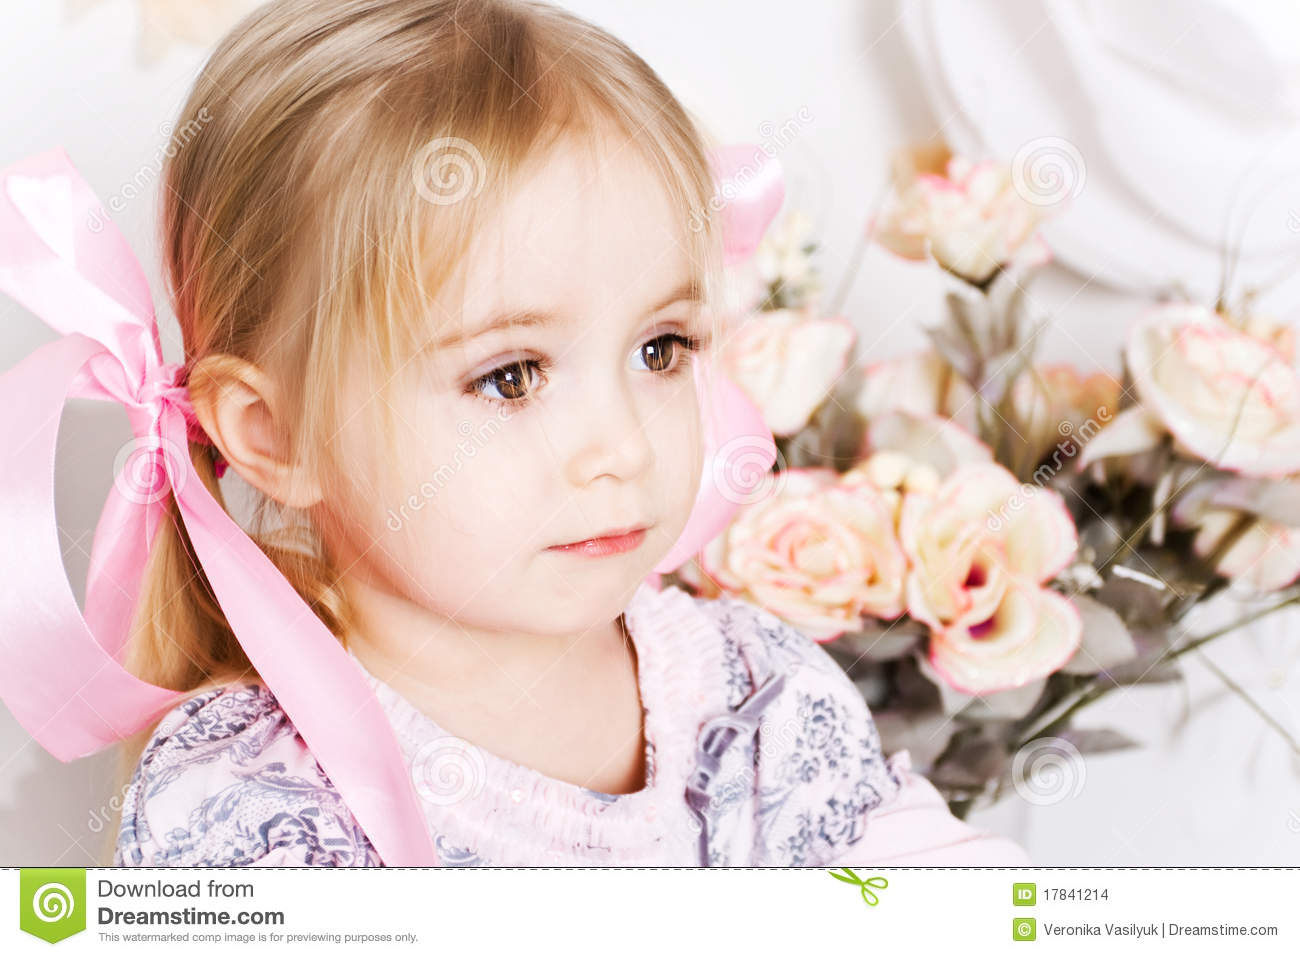 Http Dreamstime Com Stock Images Little Princess Image17841214